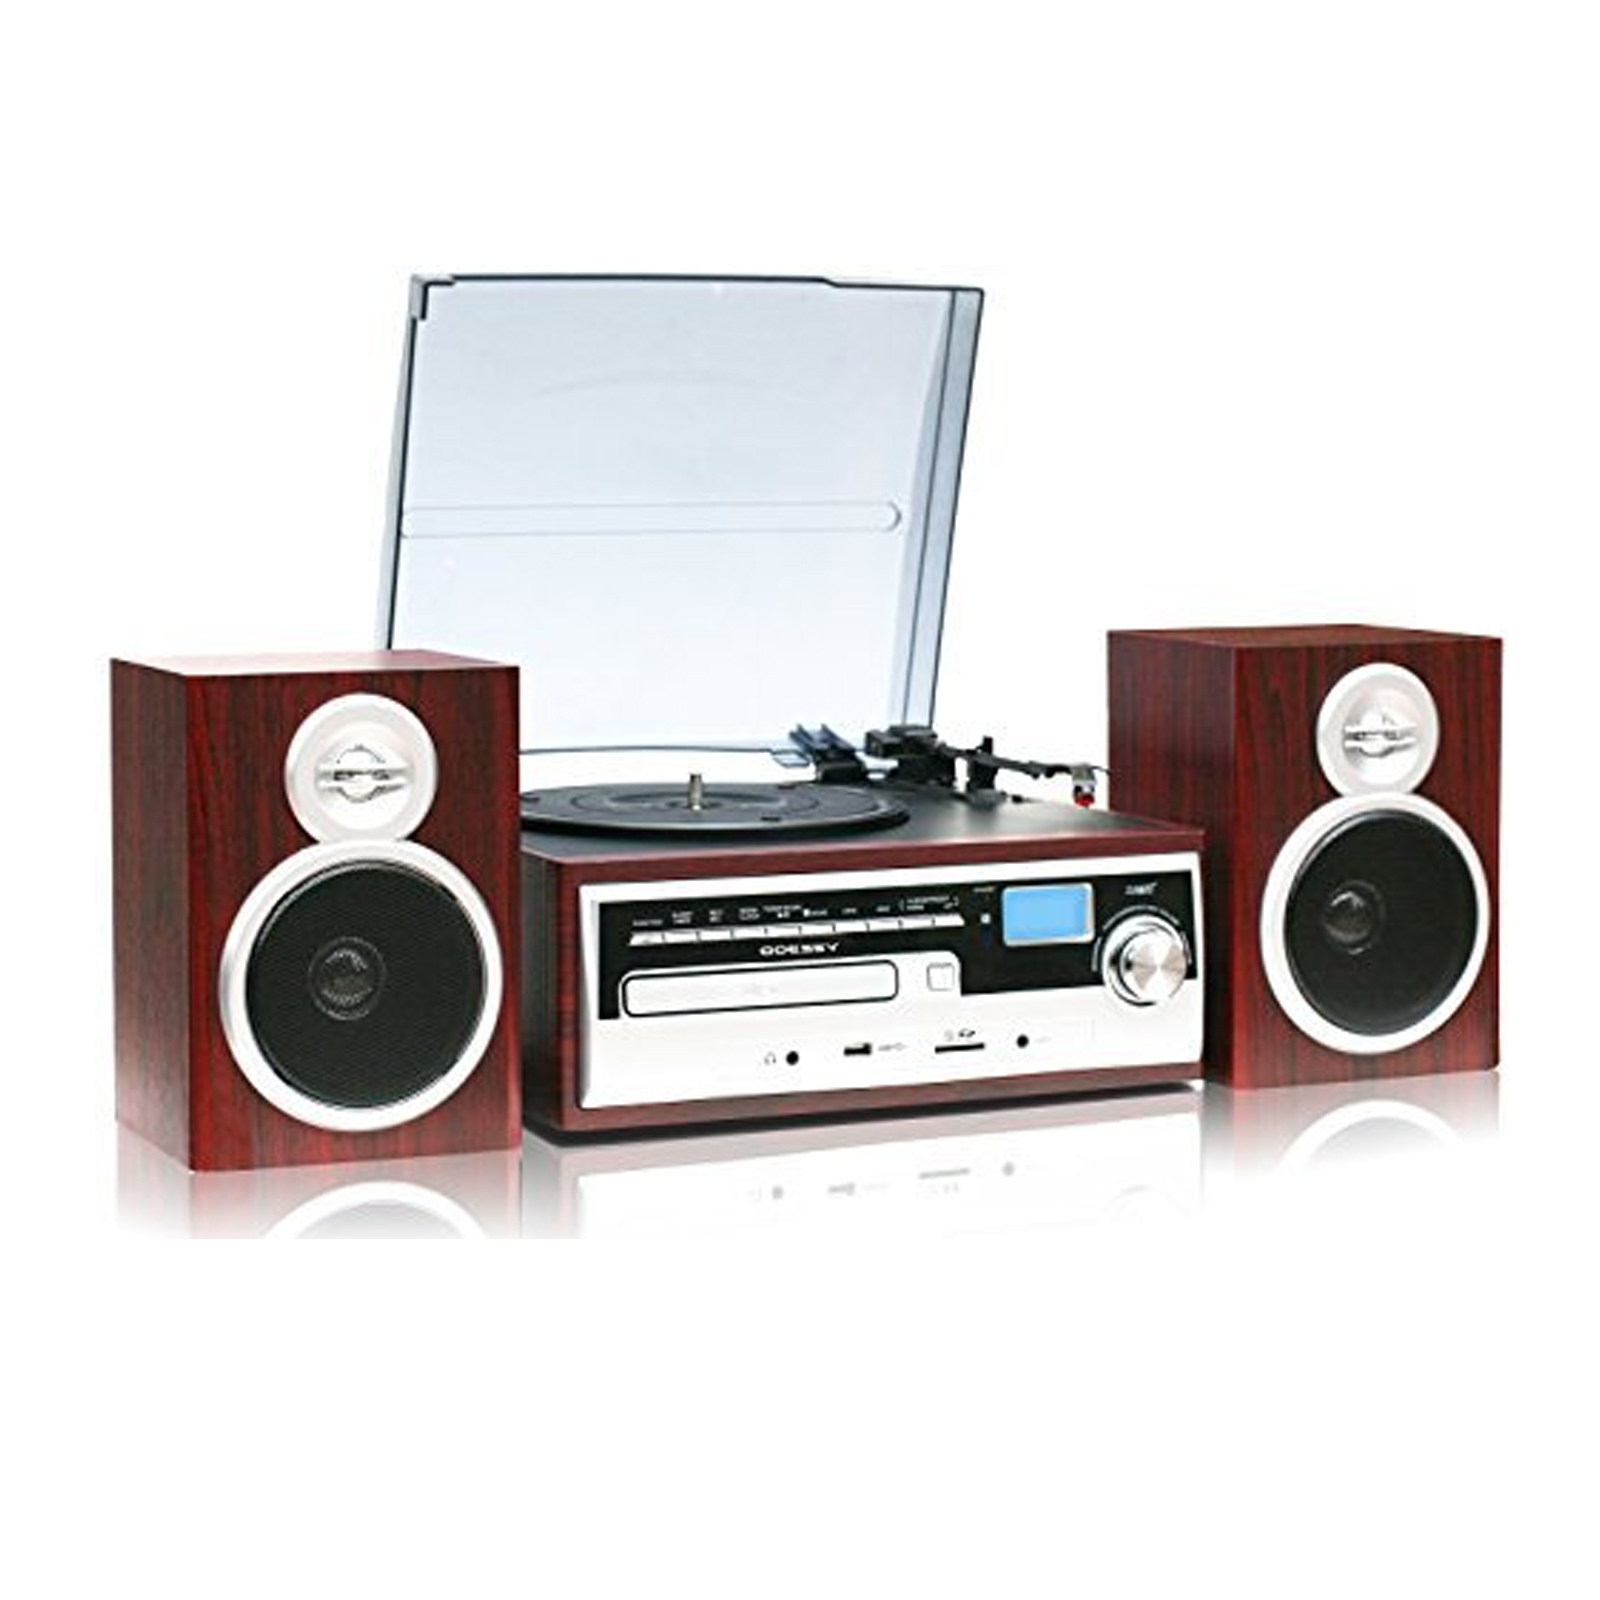 TechPlay 3 - Speed Turntable with CD  /  MP3  /  Cassette  /  SD Card  /  USB player, AM  /  FM Radio, AUX IN, Line out Alarm CLOCK, Remote and External Speakers -  Wood